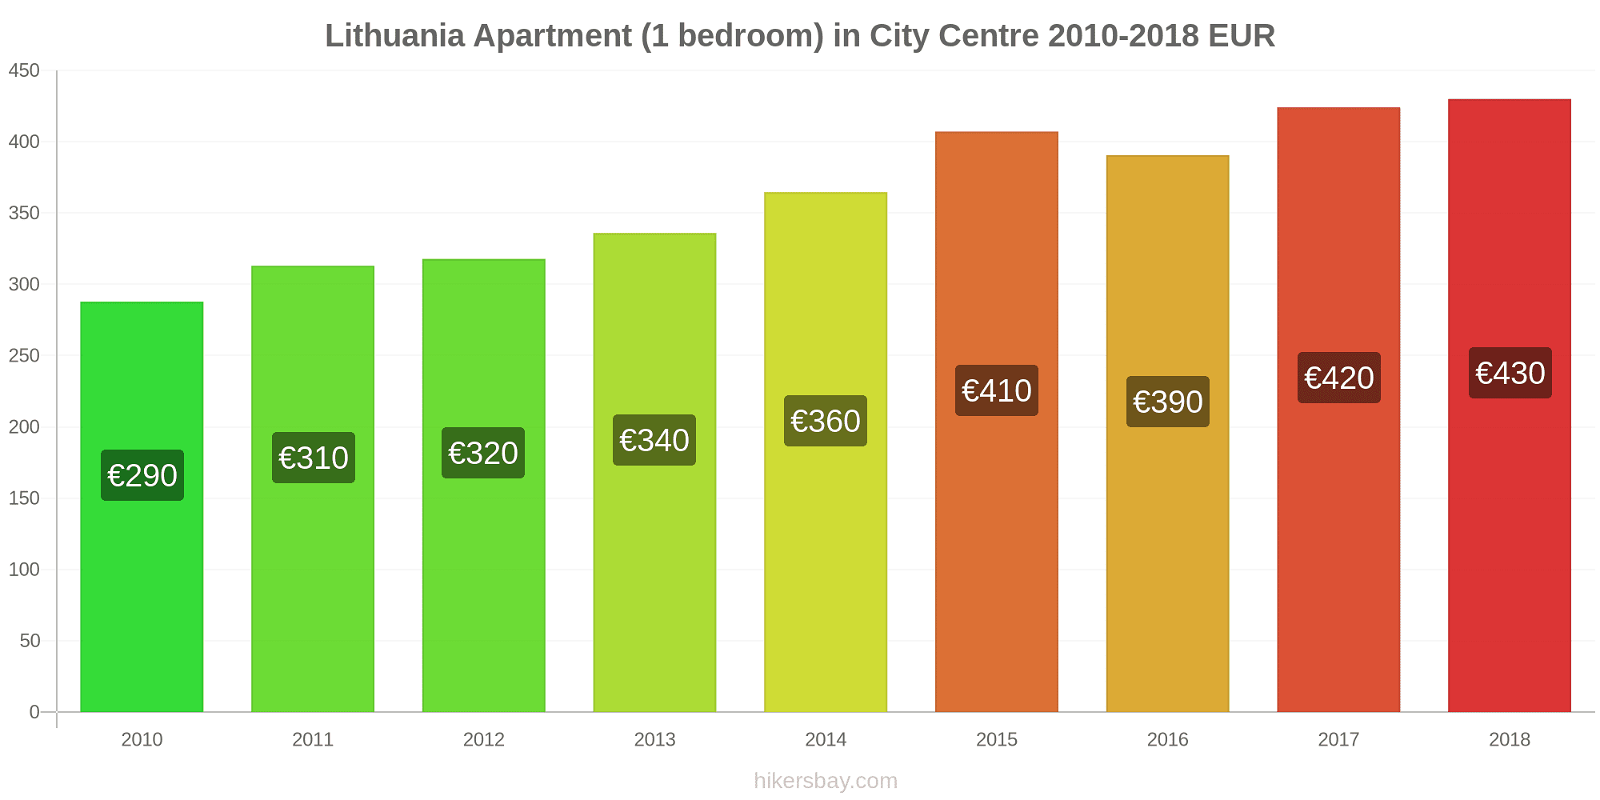 Lithuania price changes Apartment (1 bedroom) in City Centre hikersbay.com